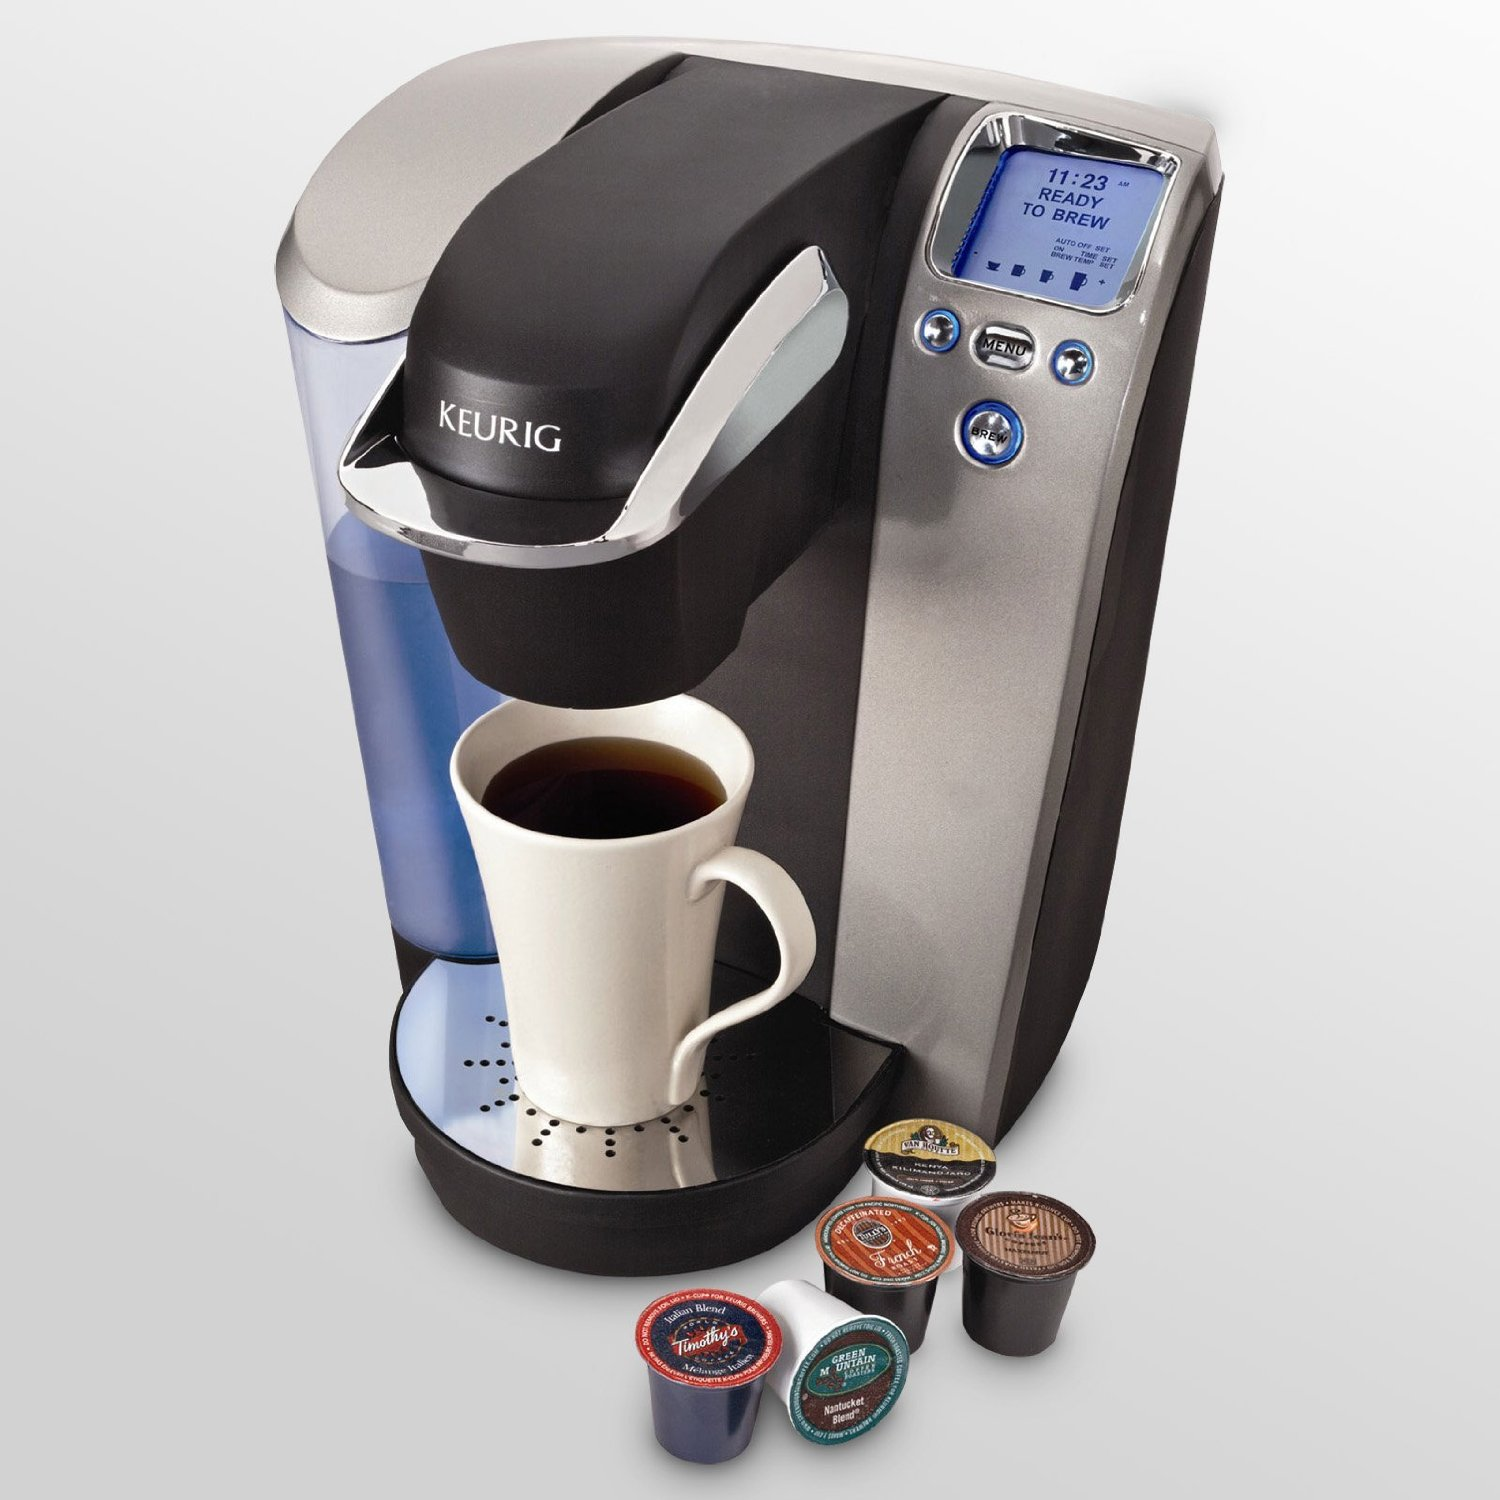 Registry Vote: Cuisinart or Keurig Coffee Maker? SimpleRegistry